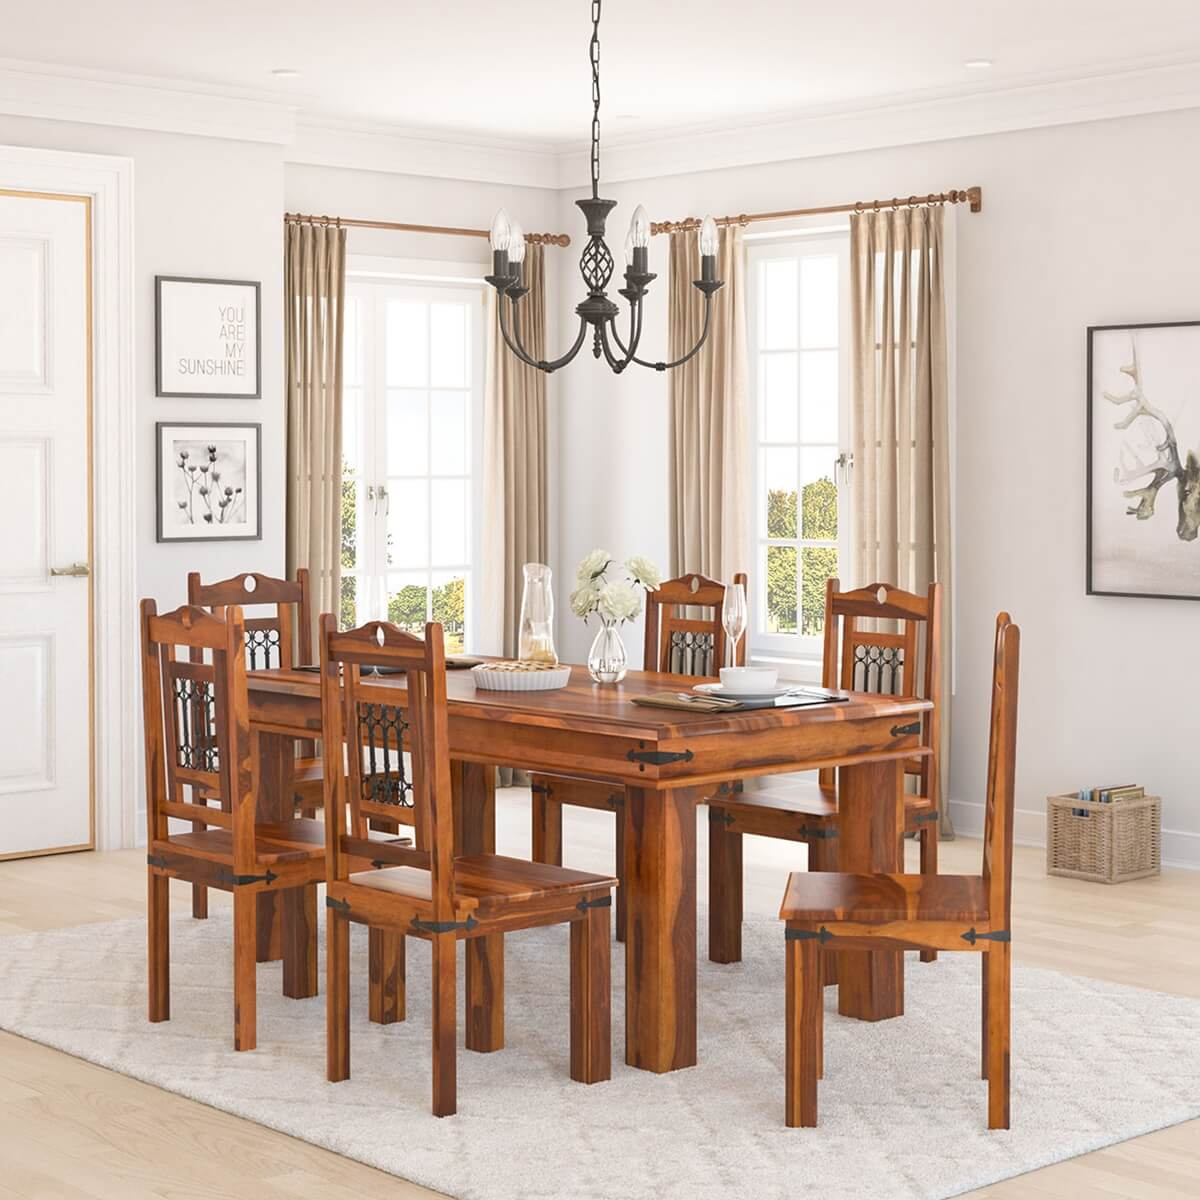 Philadelphia Classic 7pc Transitional Dining Room Table And Chair Set Hover To Zoom